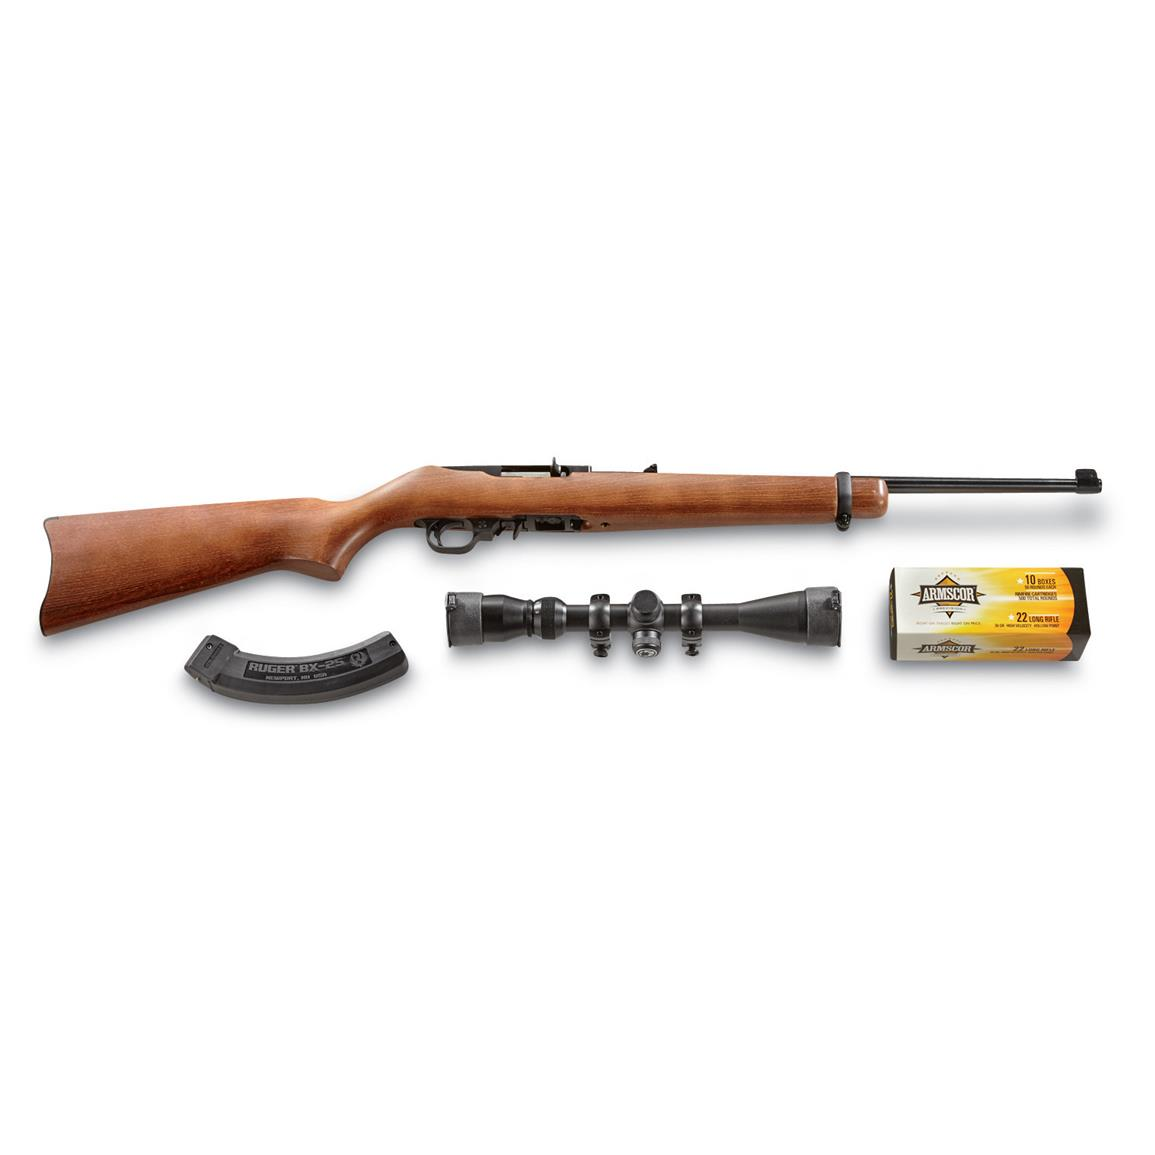 Ruger 10/22 Carbine Shooters' Pack, .22LR, with Barska Scope, 500 Rounds, 25 Round Magazine